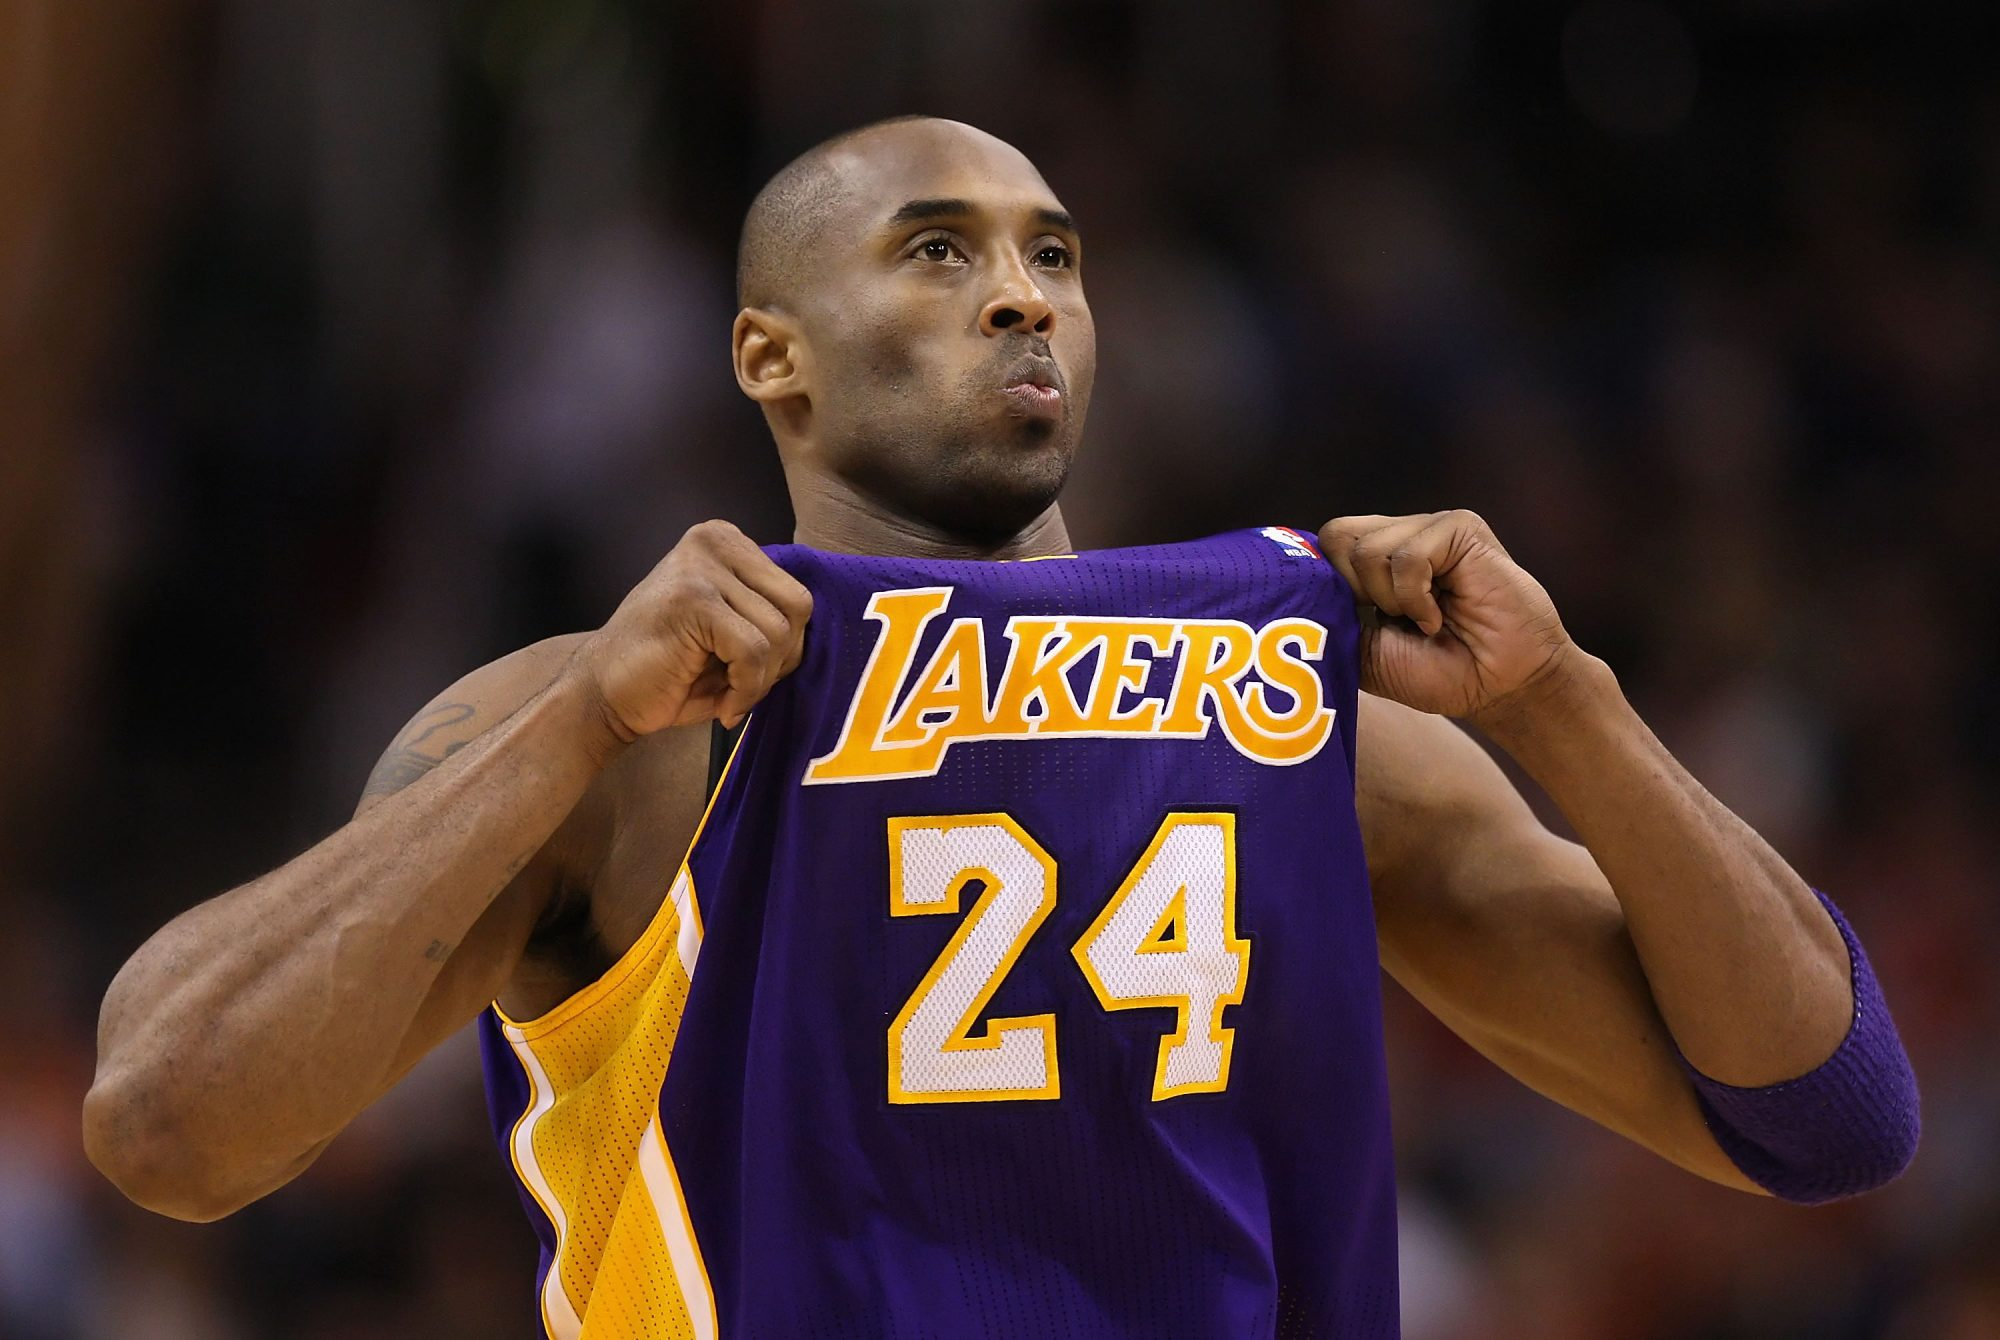 Kobe Bryant #24, Los Angeles Lakers